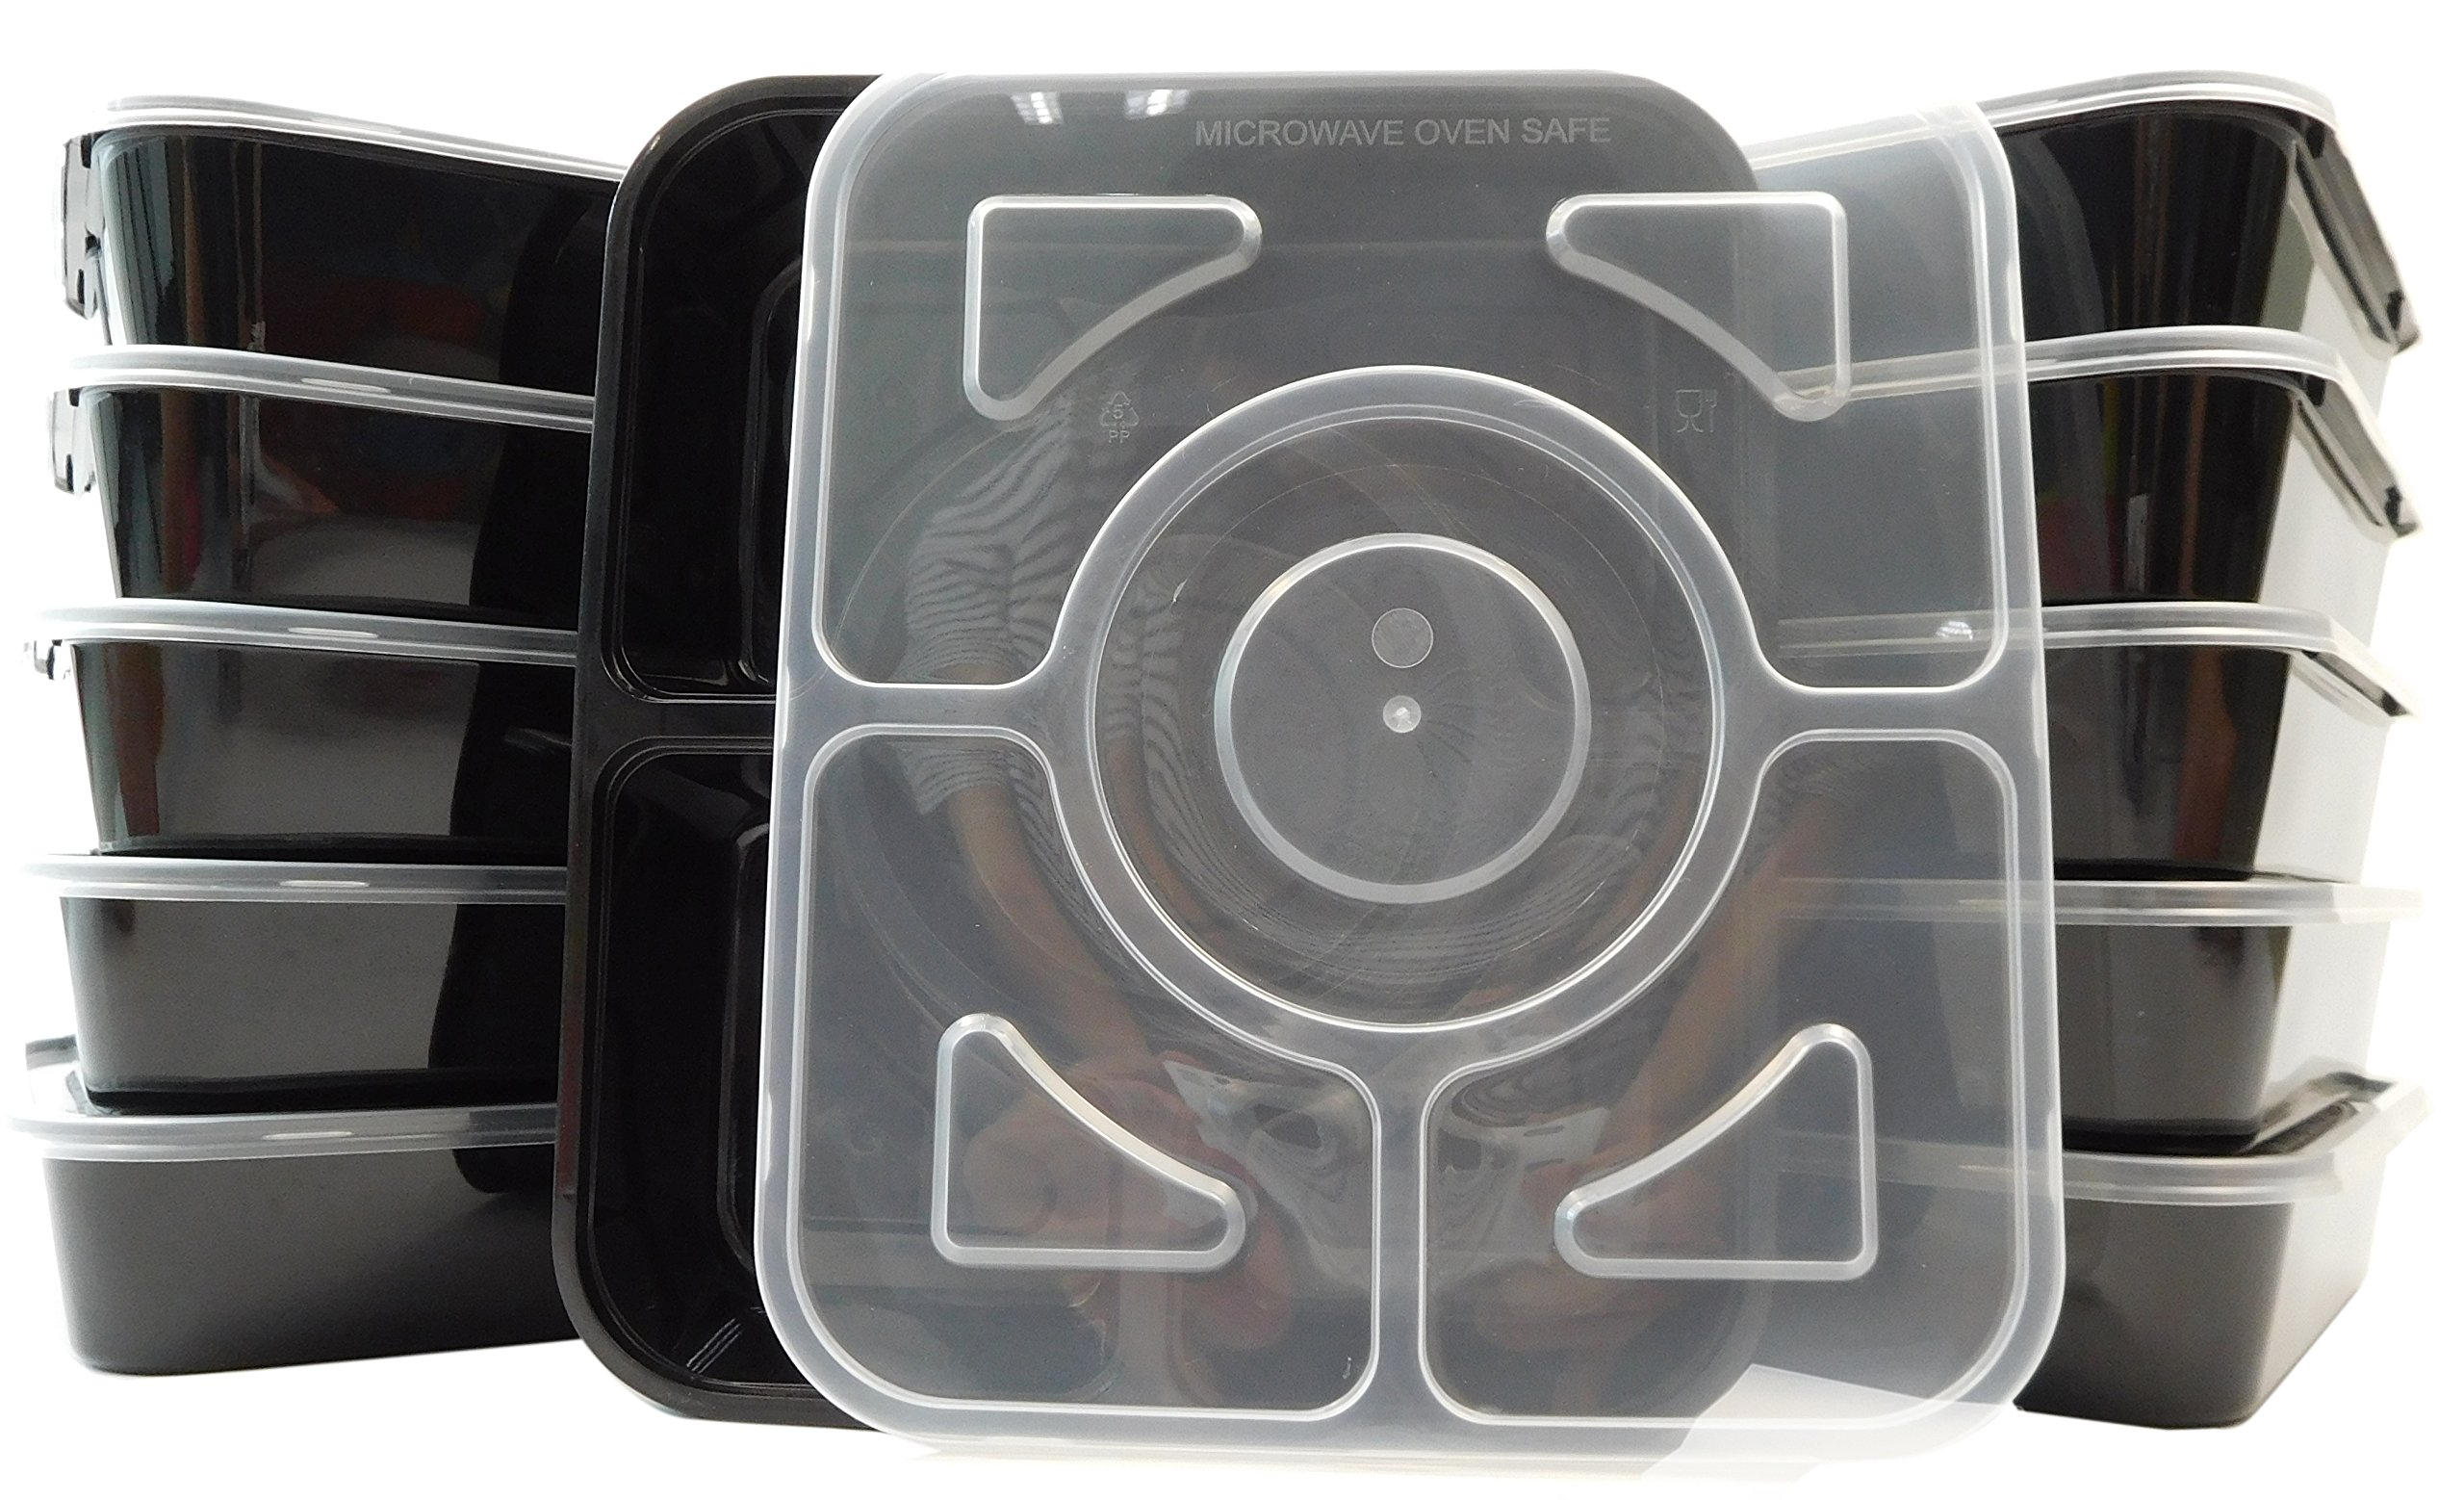 Table To Go 240-Pack Bento Lunch Boxes with Lids (4 Compartment/ 36 oz) | Microwaveable, Dishwasher & Freezer Safe Meal Prep Containers | Reusable Dish Set for Prepping, Portion Control & More (Black)